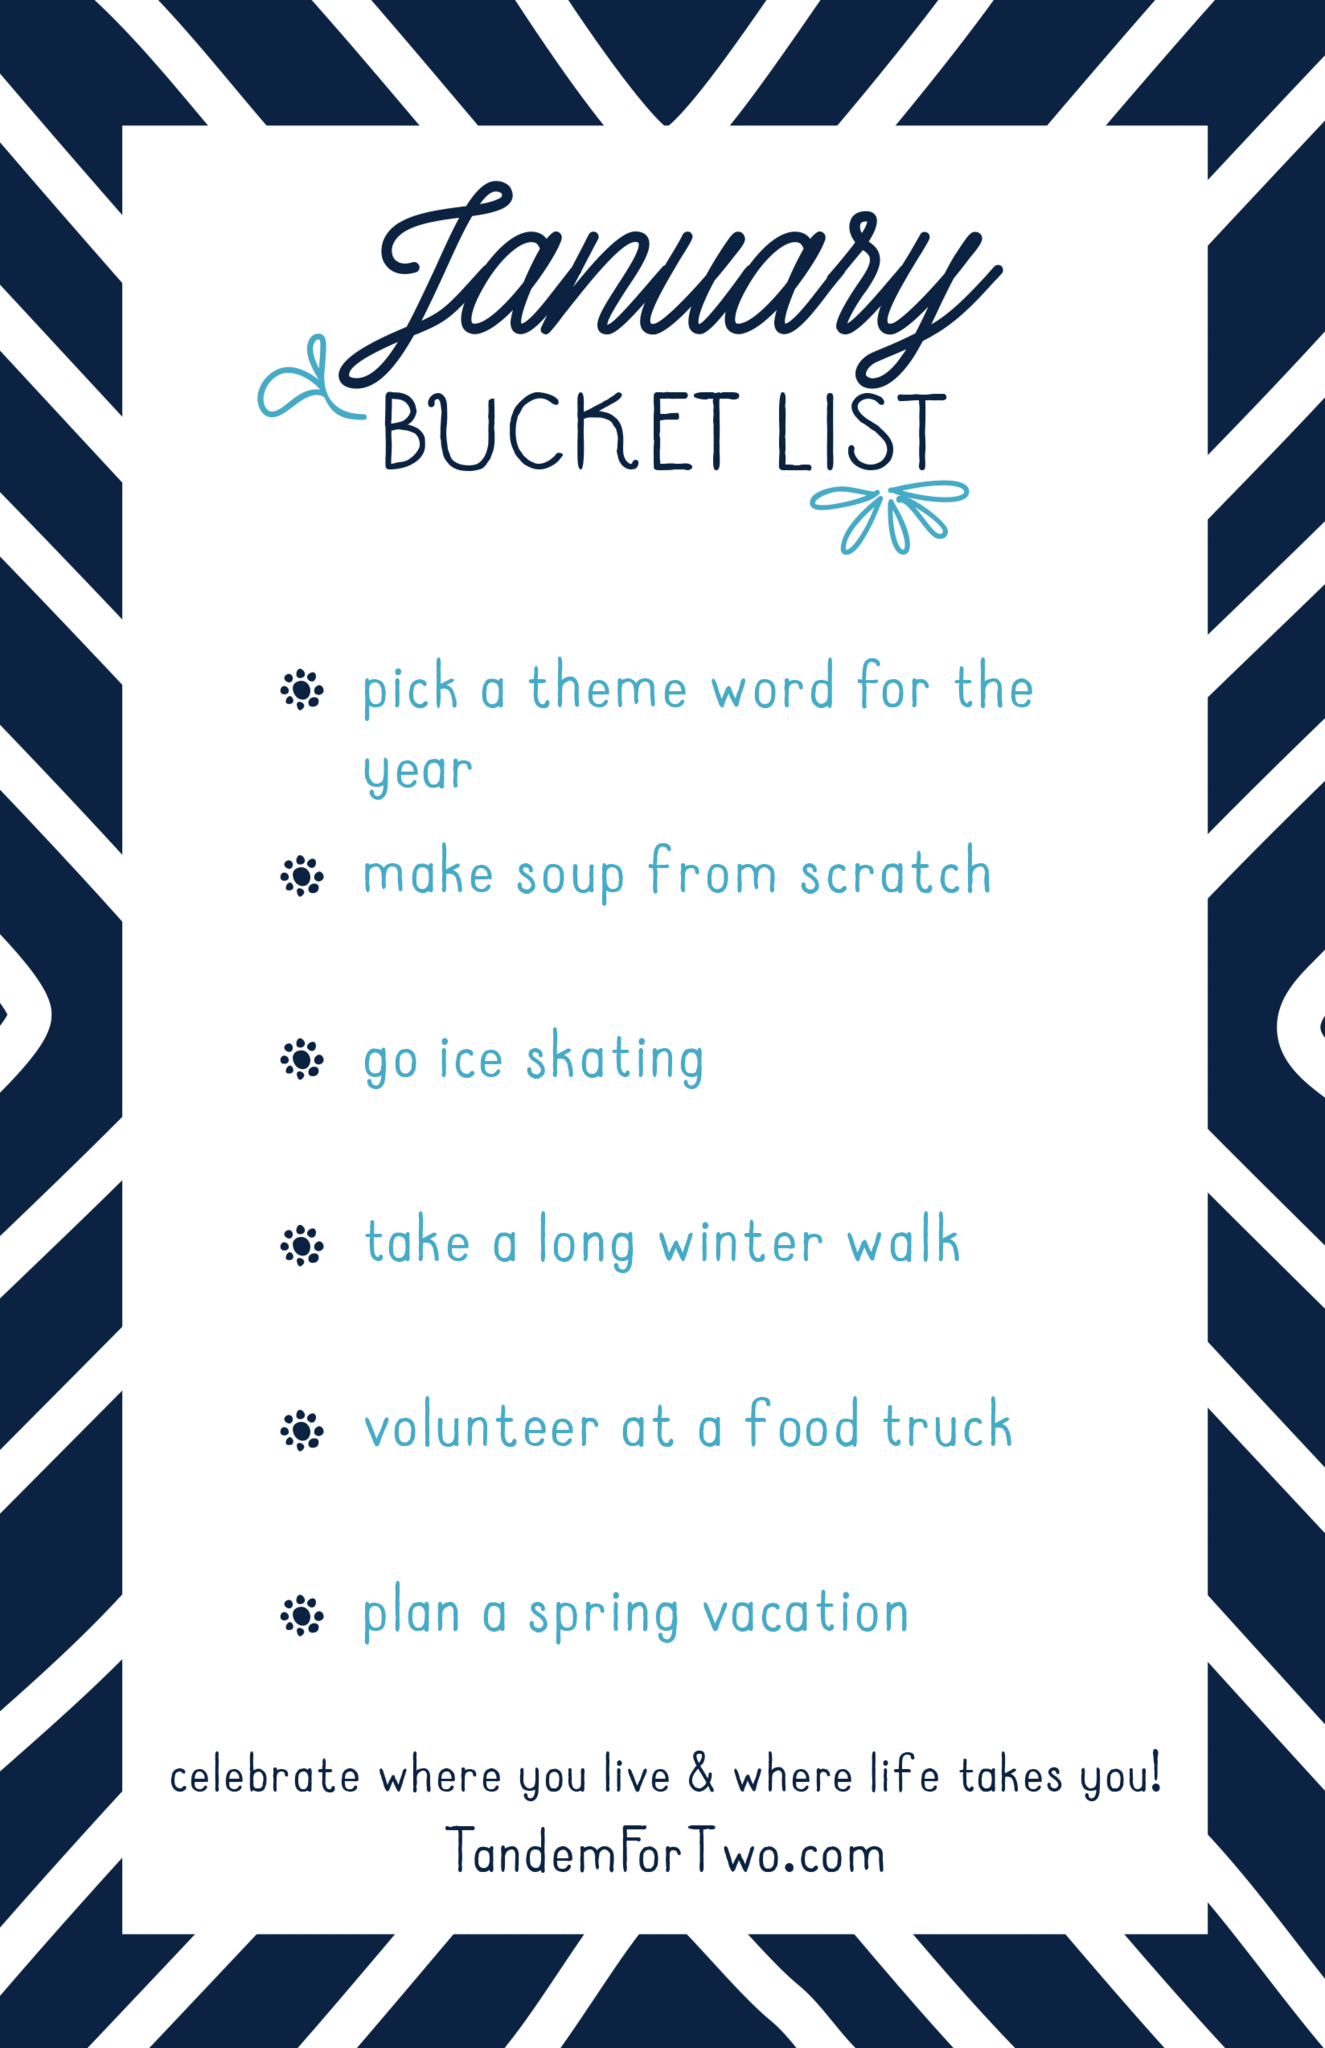 January Bucket List from Tandem For Two